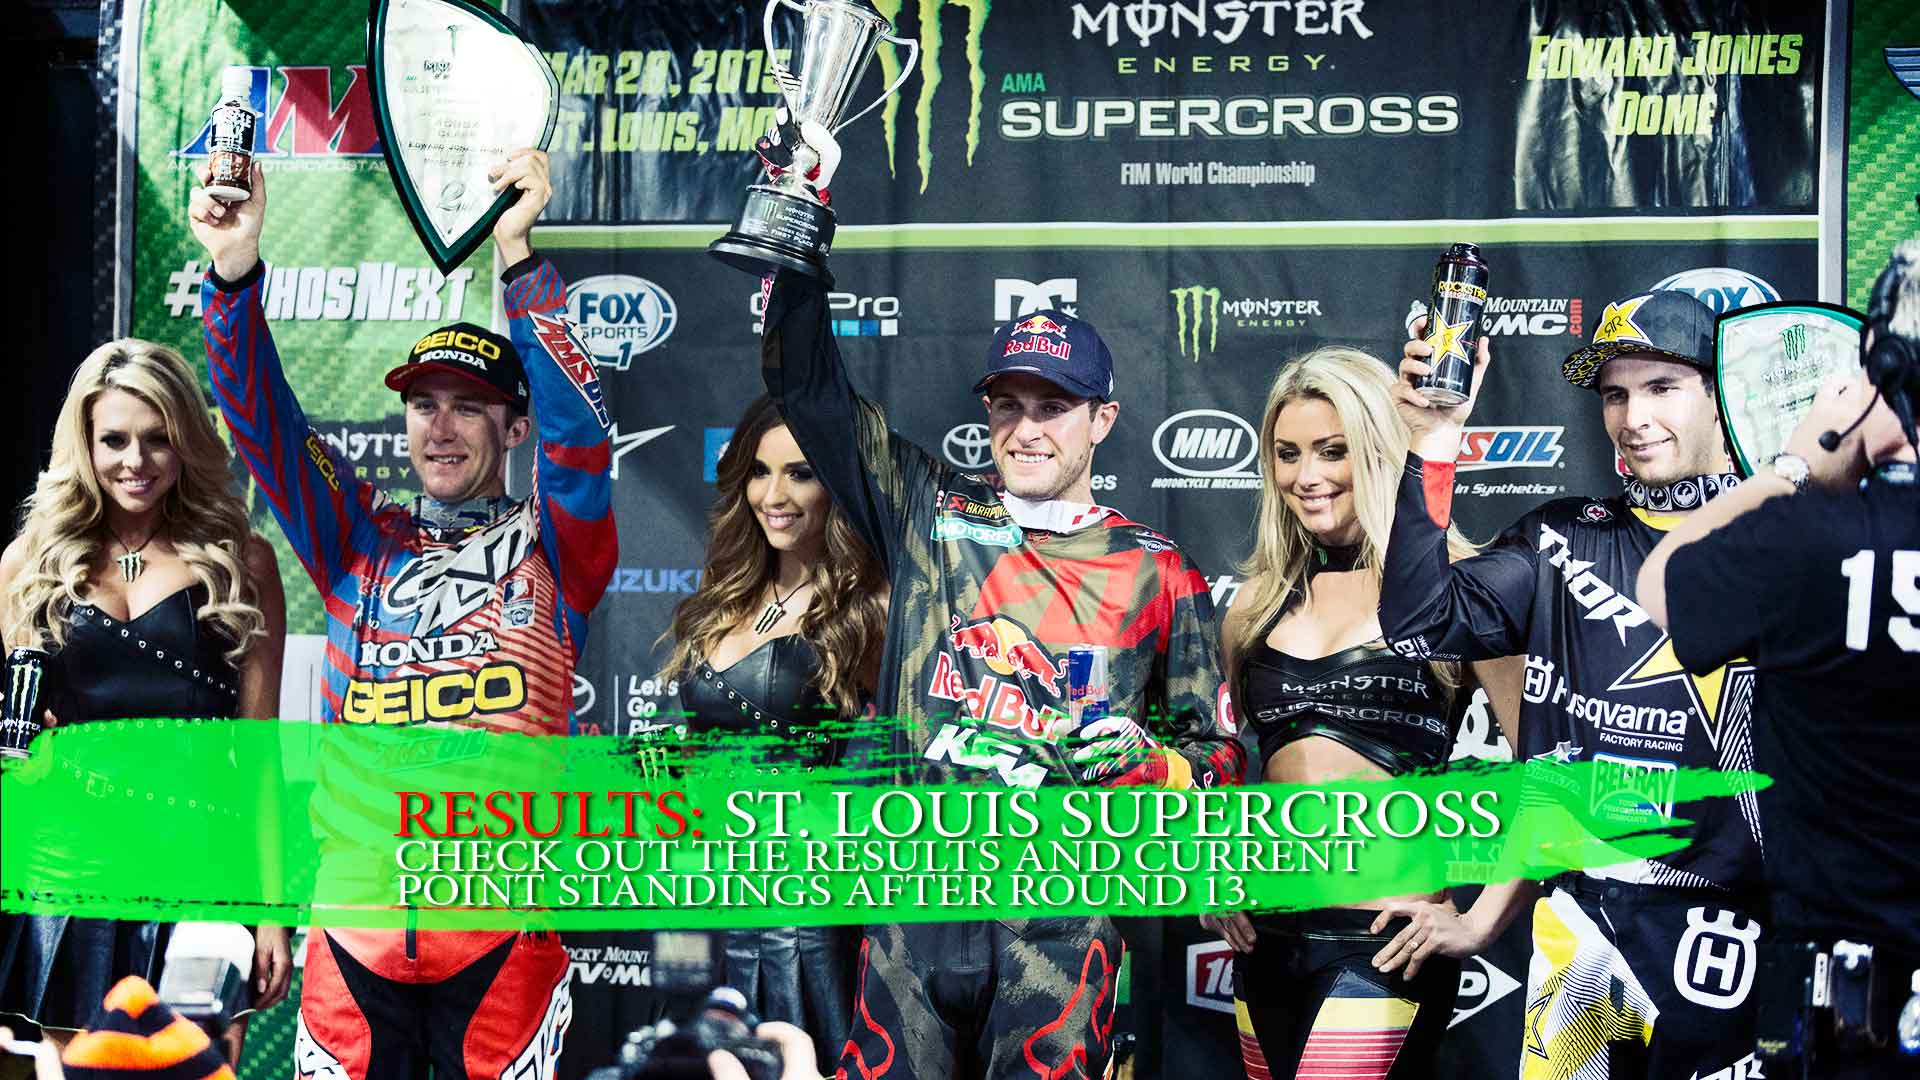 RESULTS: St. Louis Supercross Round 13